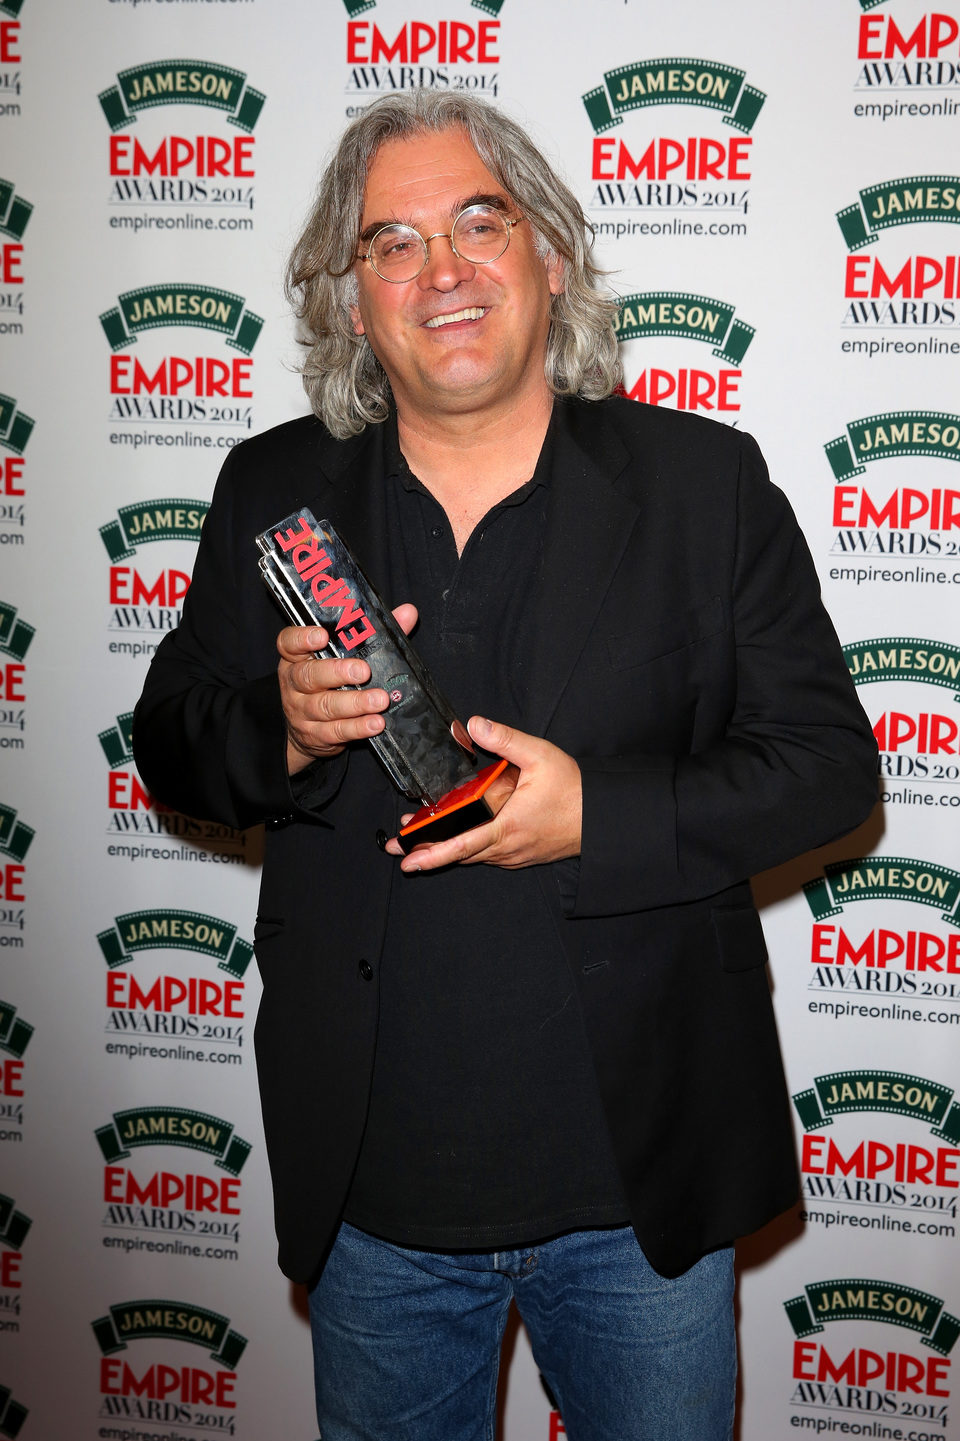 Paul Greengrass, inspiración Empire en los Premios Empire 2014